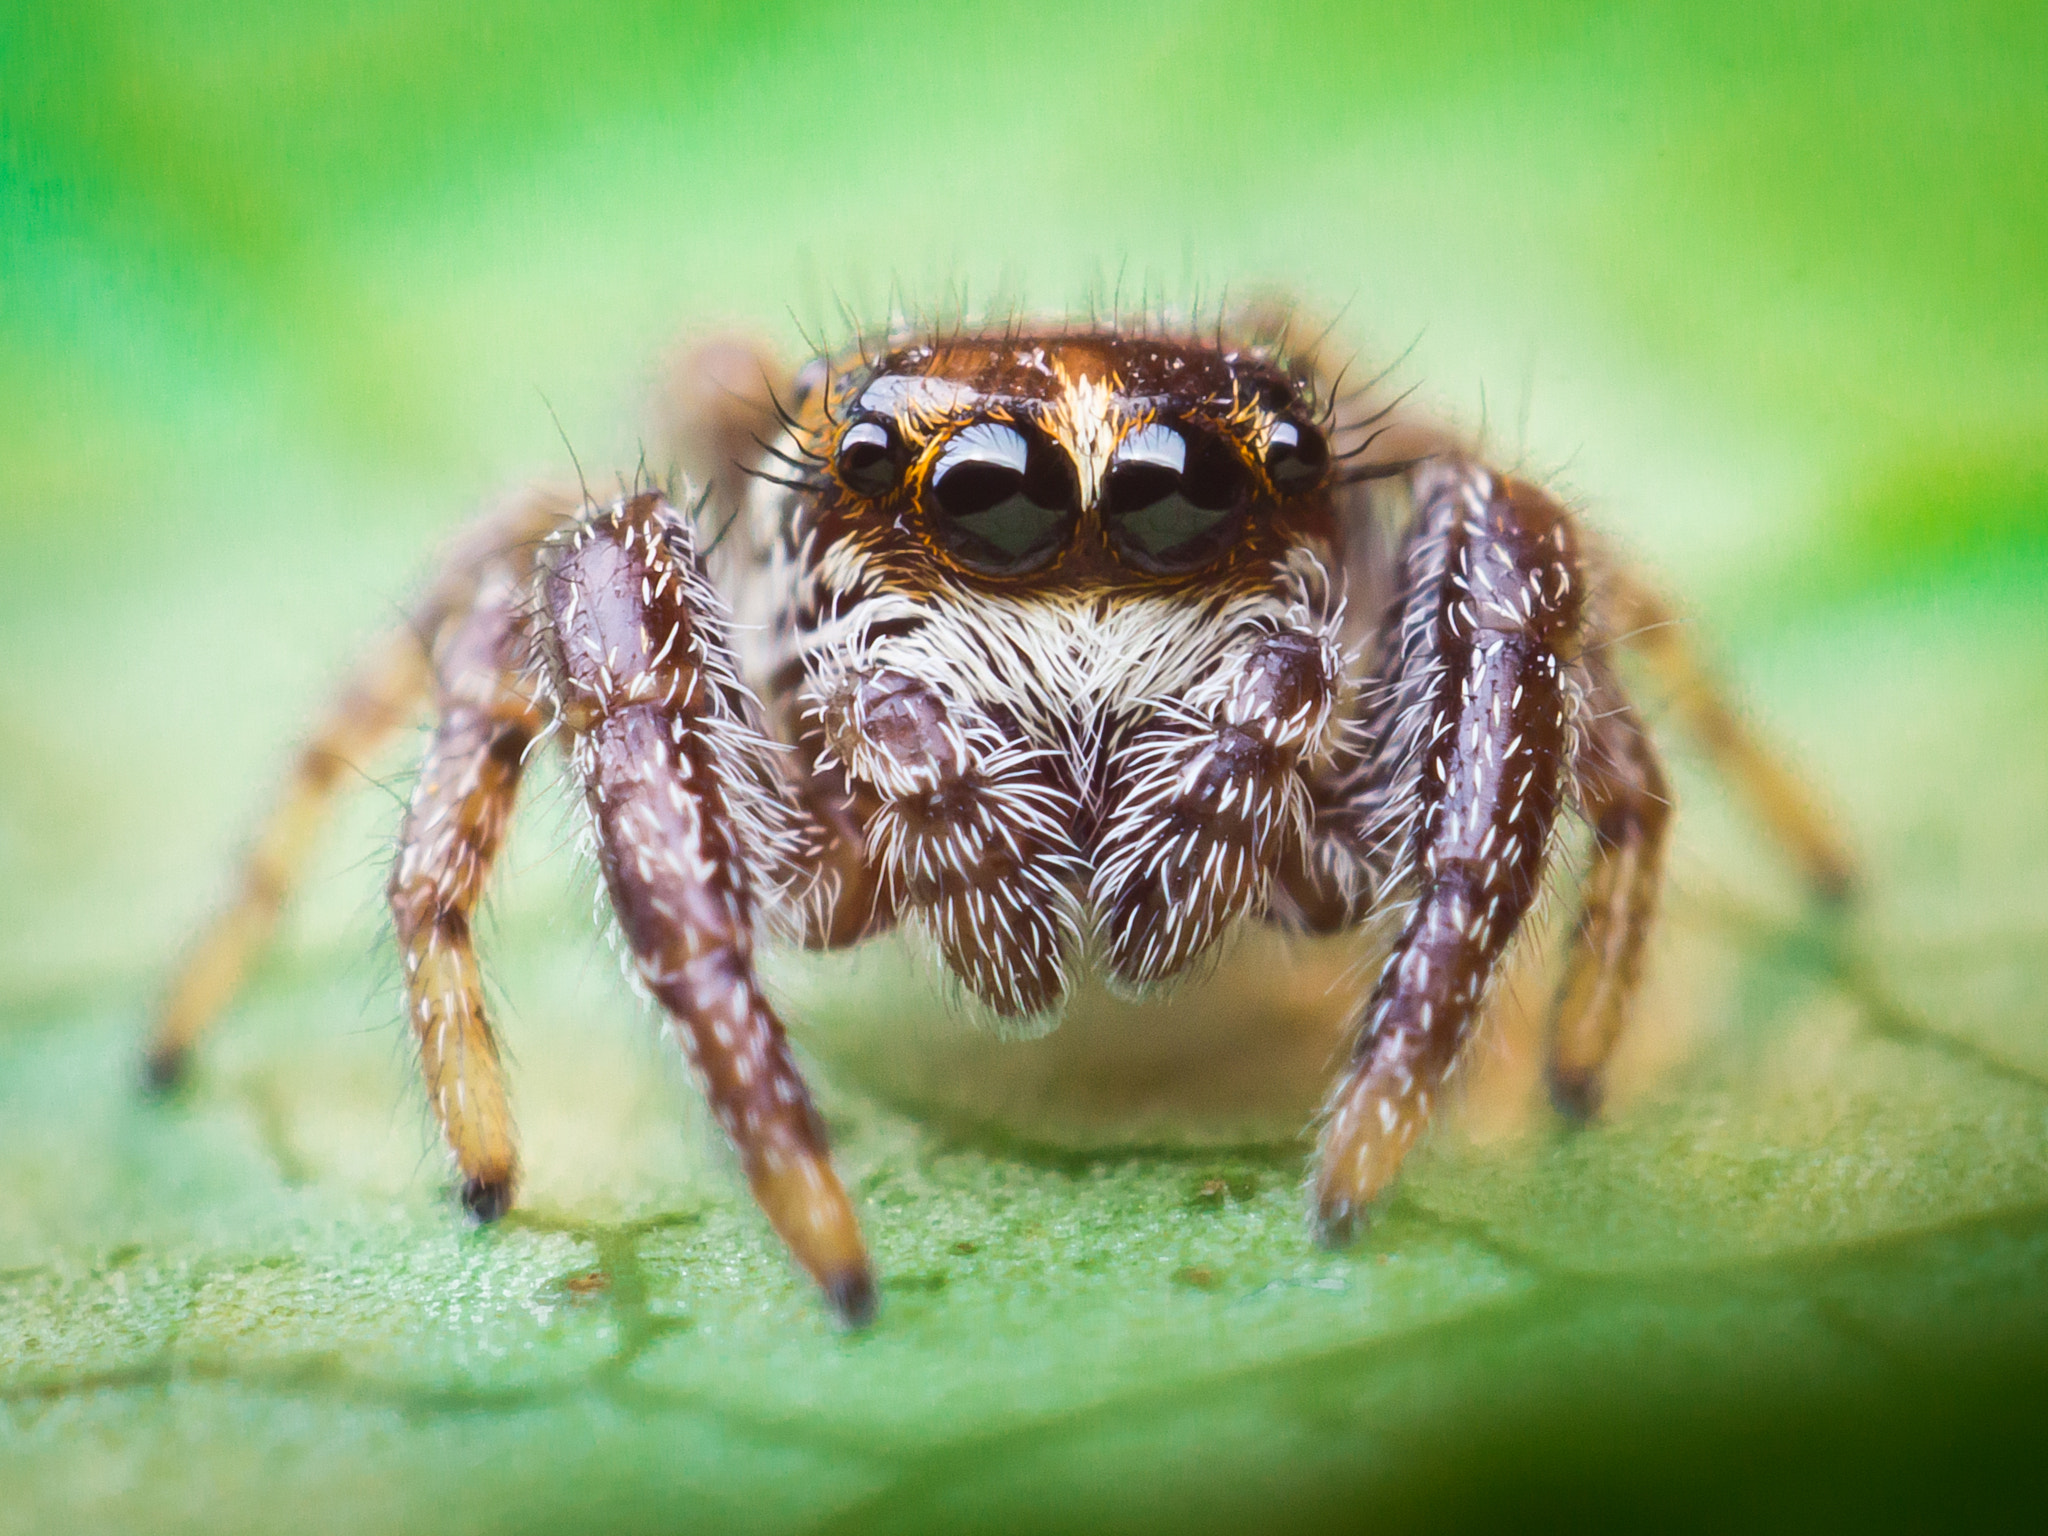 Photograph jumping spider by Alexander Rauch on 500px